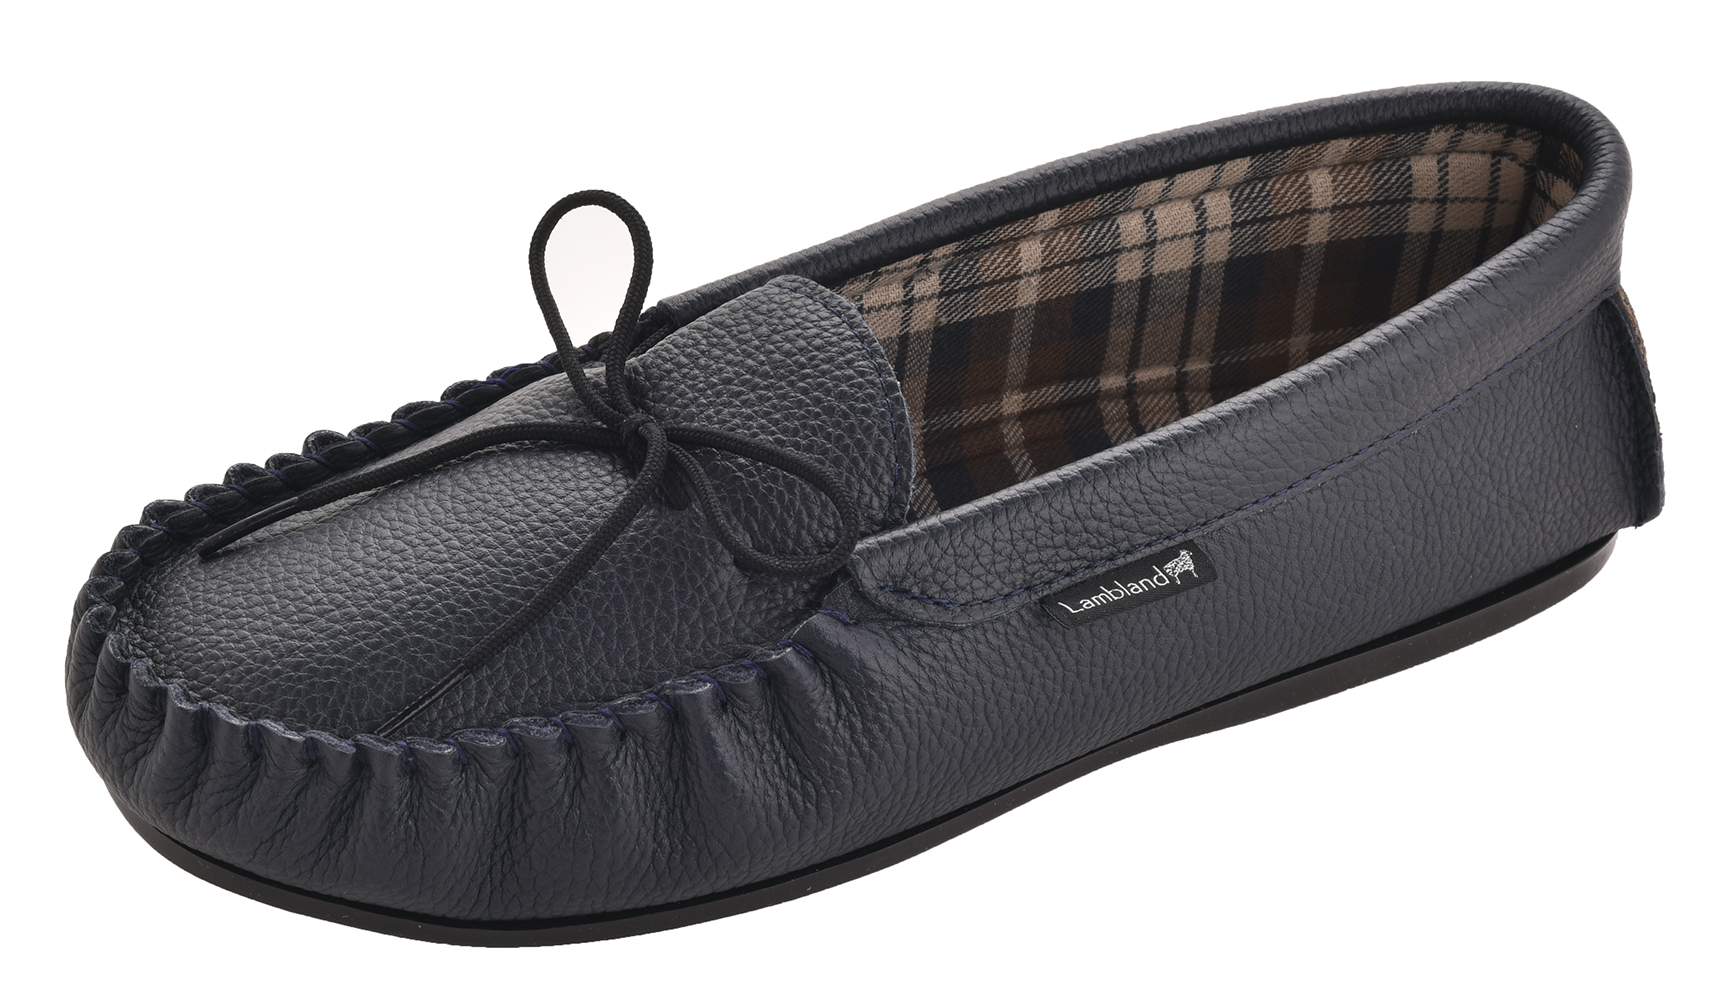 Leather-Moccasin-Slippers-UK-Made-for-Men-and-Ladies-Cotton-Lining-by-Lambland thumbnail 18